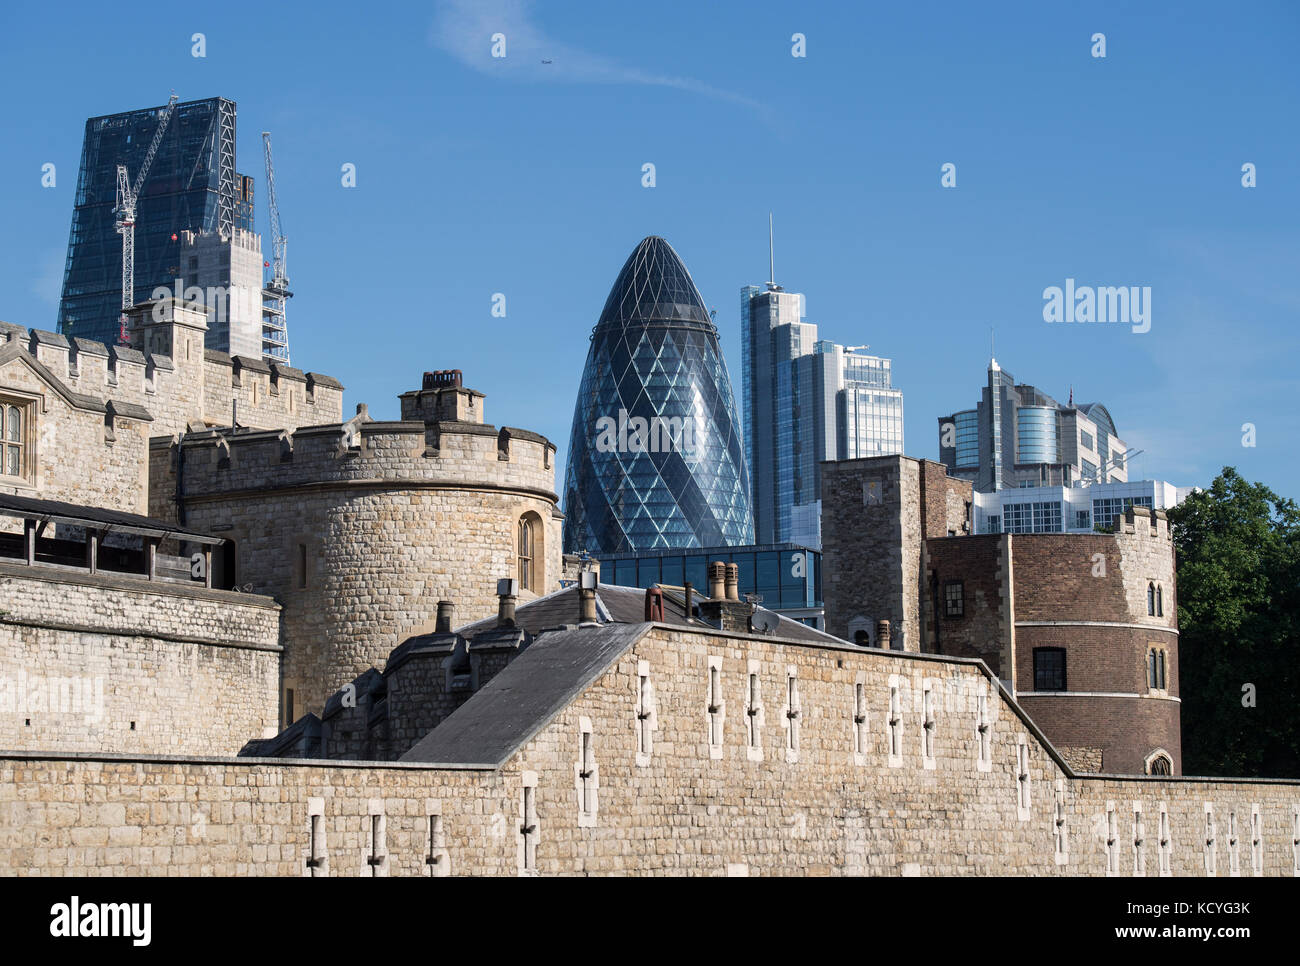 Walls of the Tower of London in London, England, UK, with the Gherkin building in the background - Stock Image